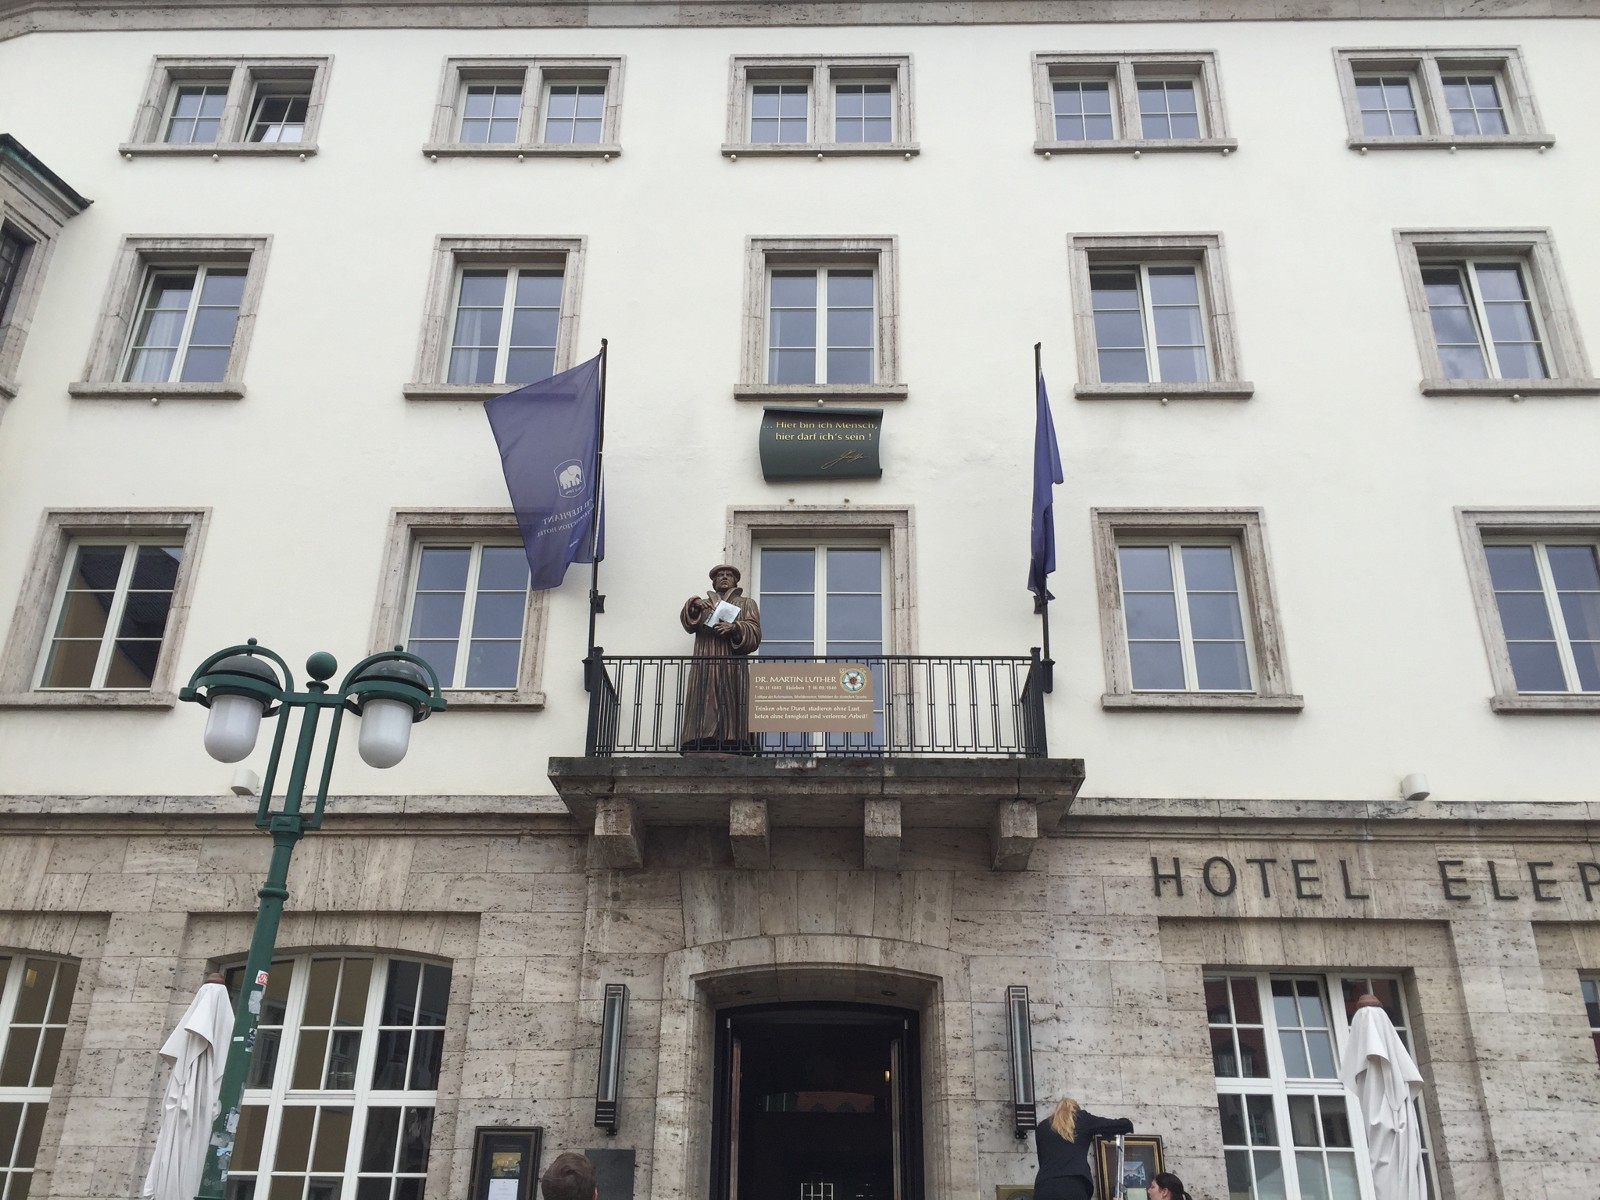 The balcony of Hotel Elephant where both Martin Luther and Adolf Hitler stood